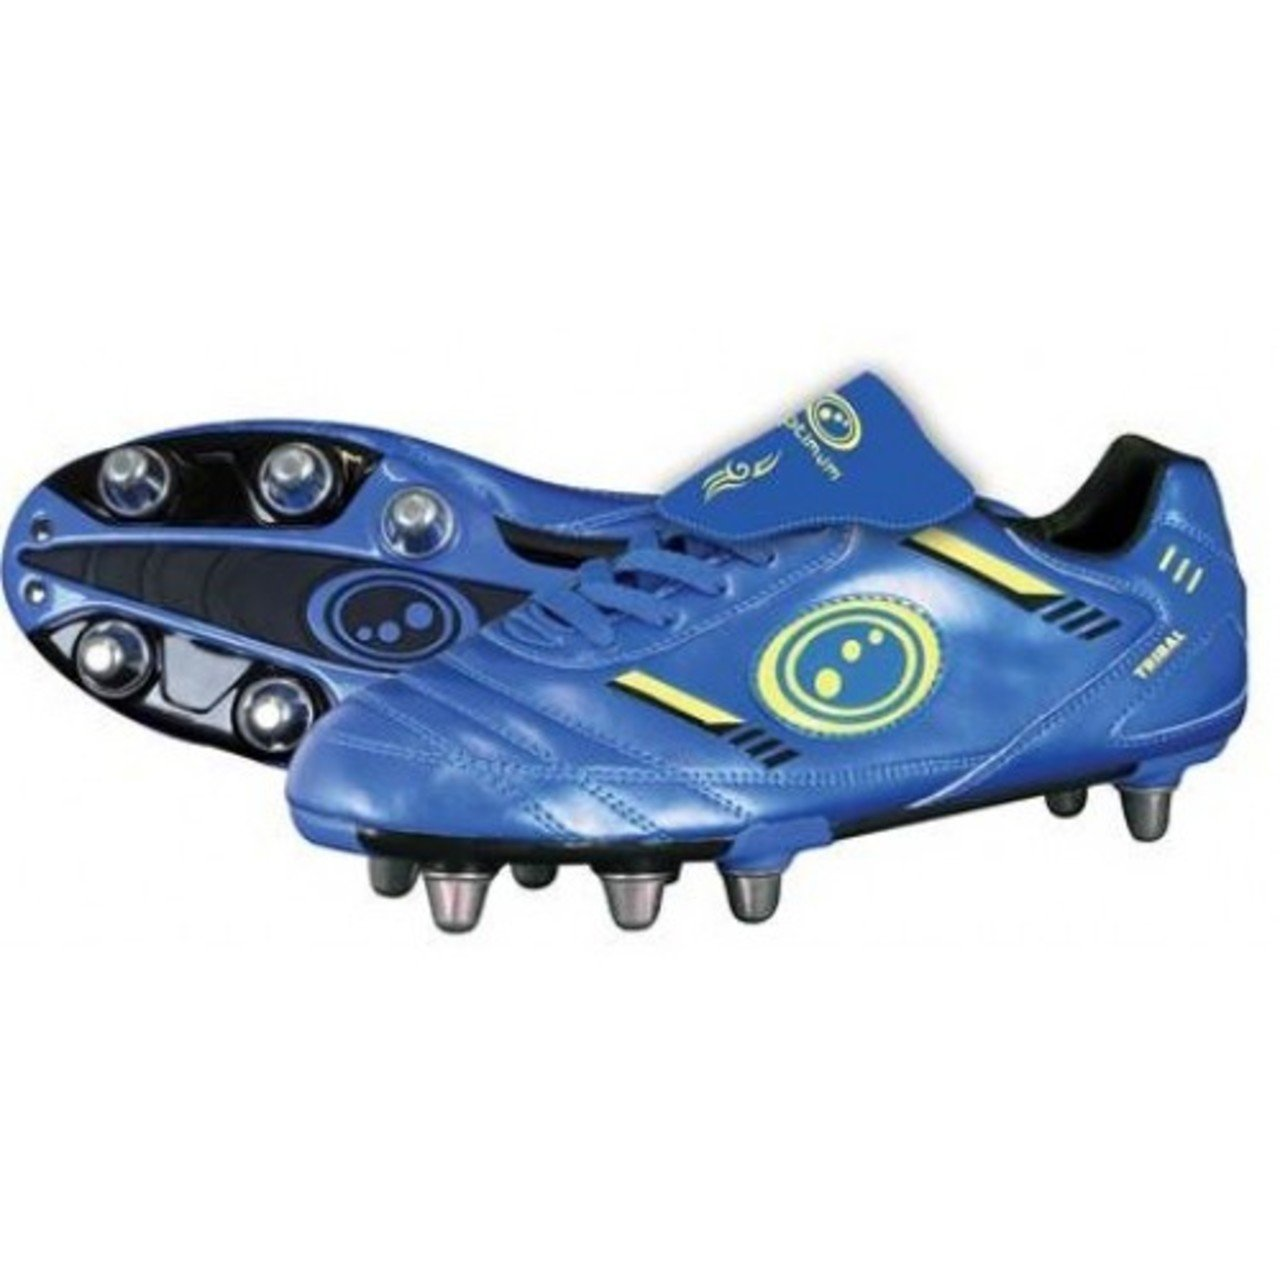 Optimum Tribal Rugby Boot 8 Stud Synthetic PU Upper Footwear Running Trainers